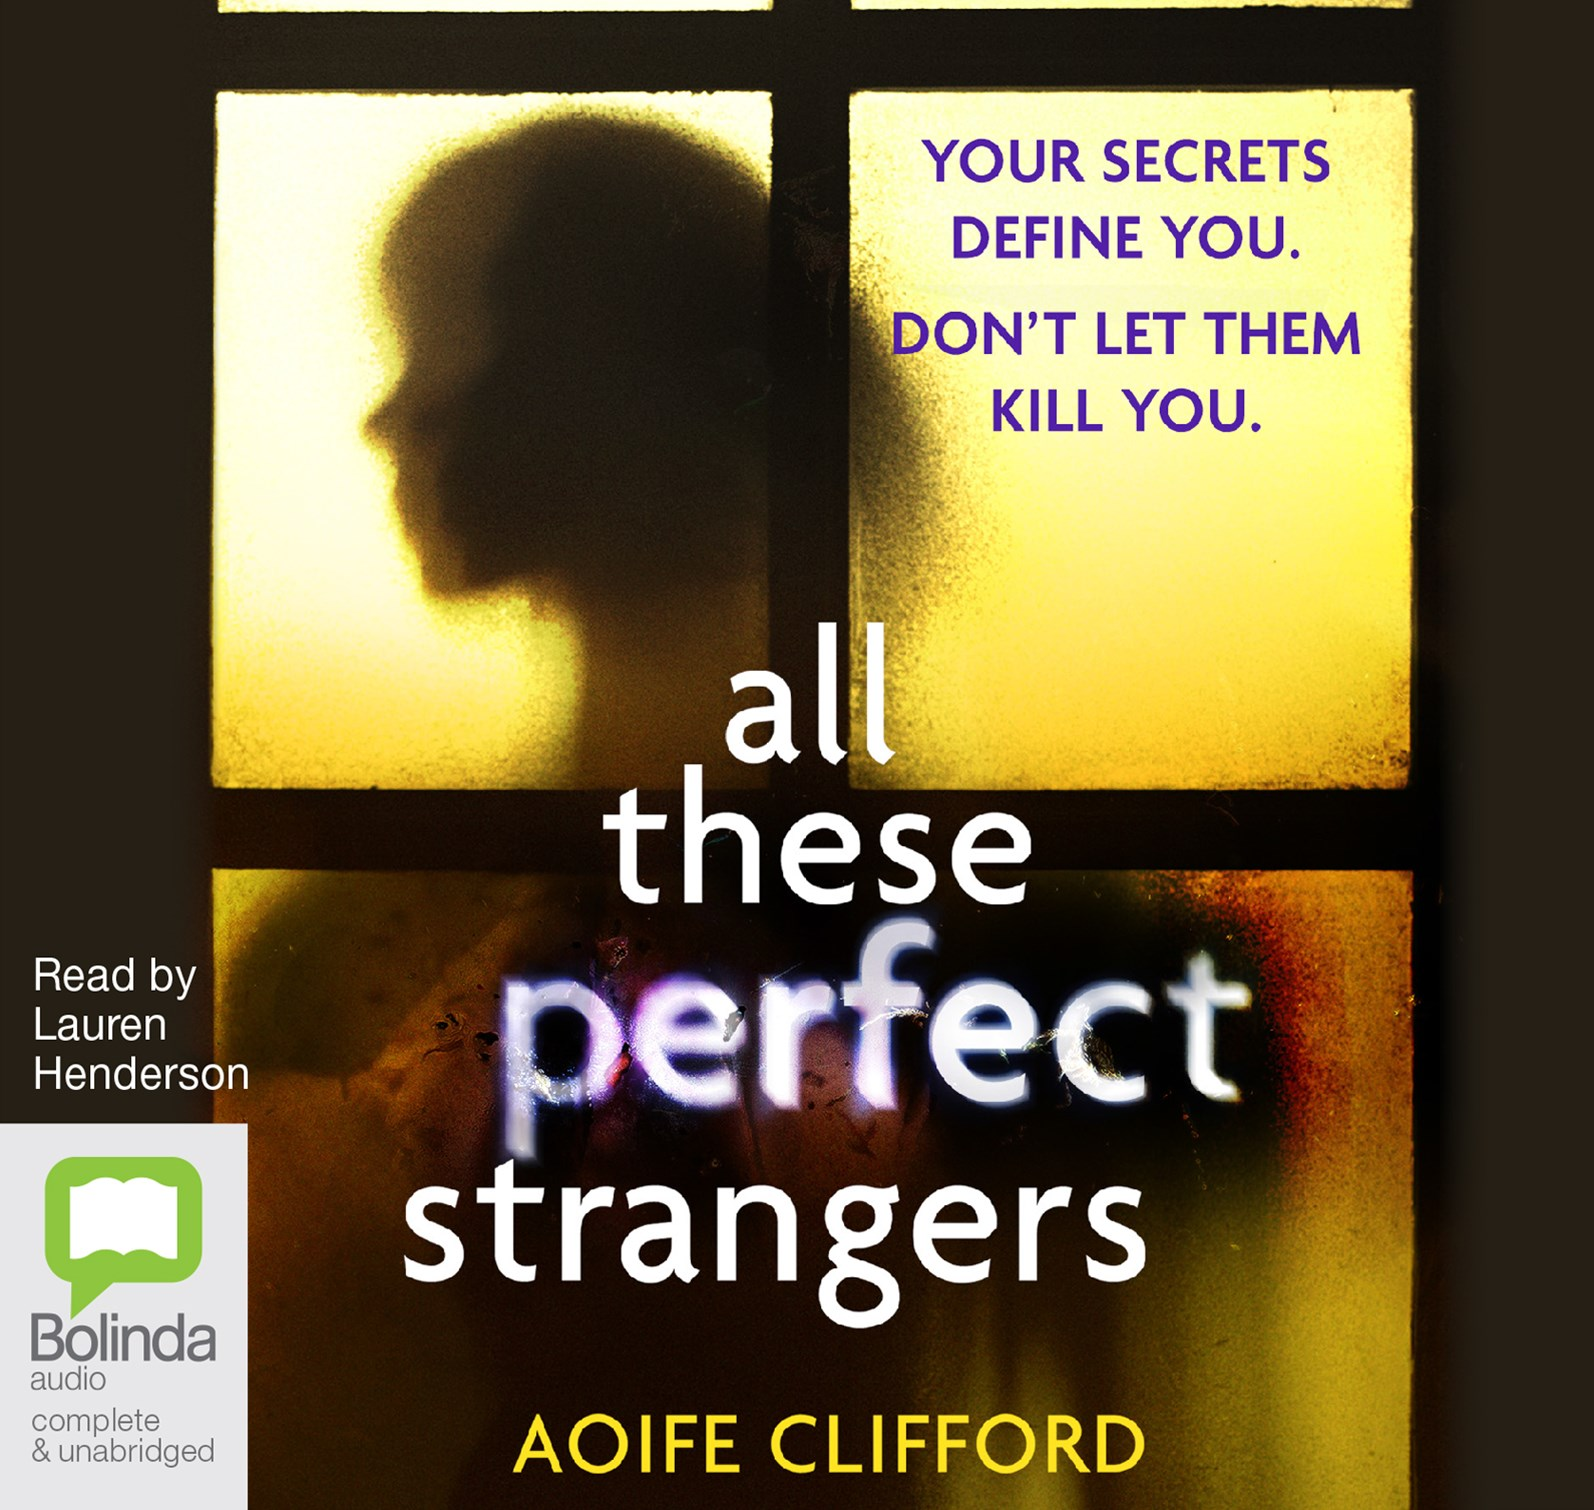 ALL THESE PERFECT STRANGERS CD